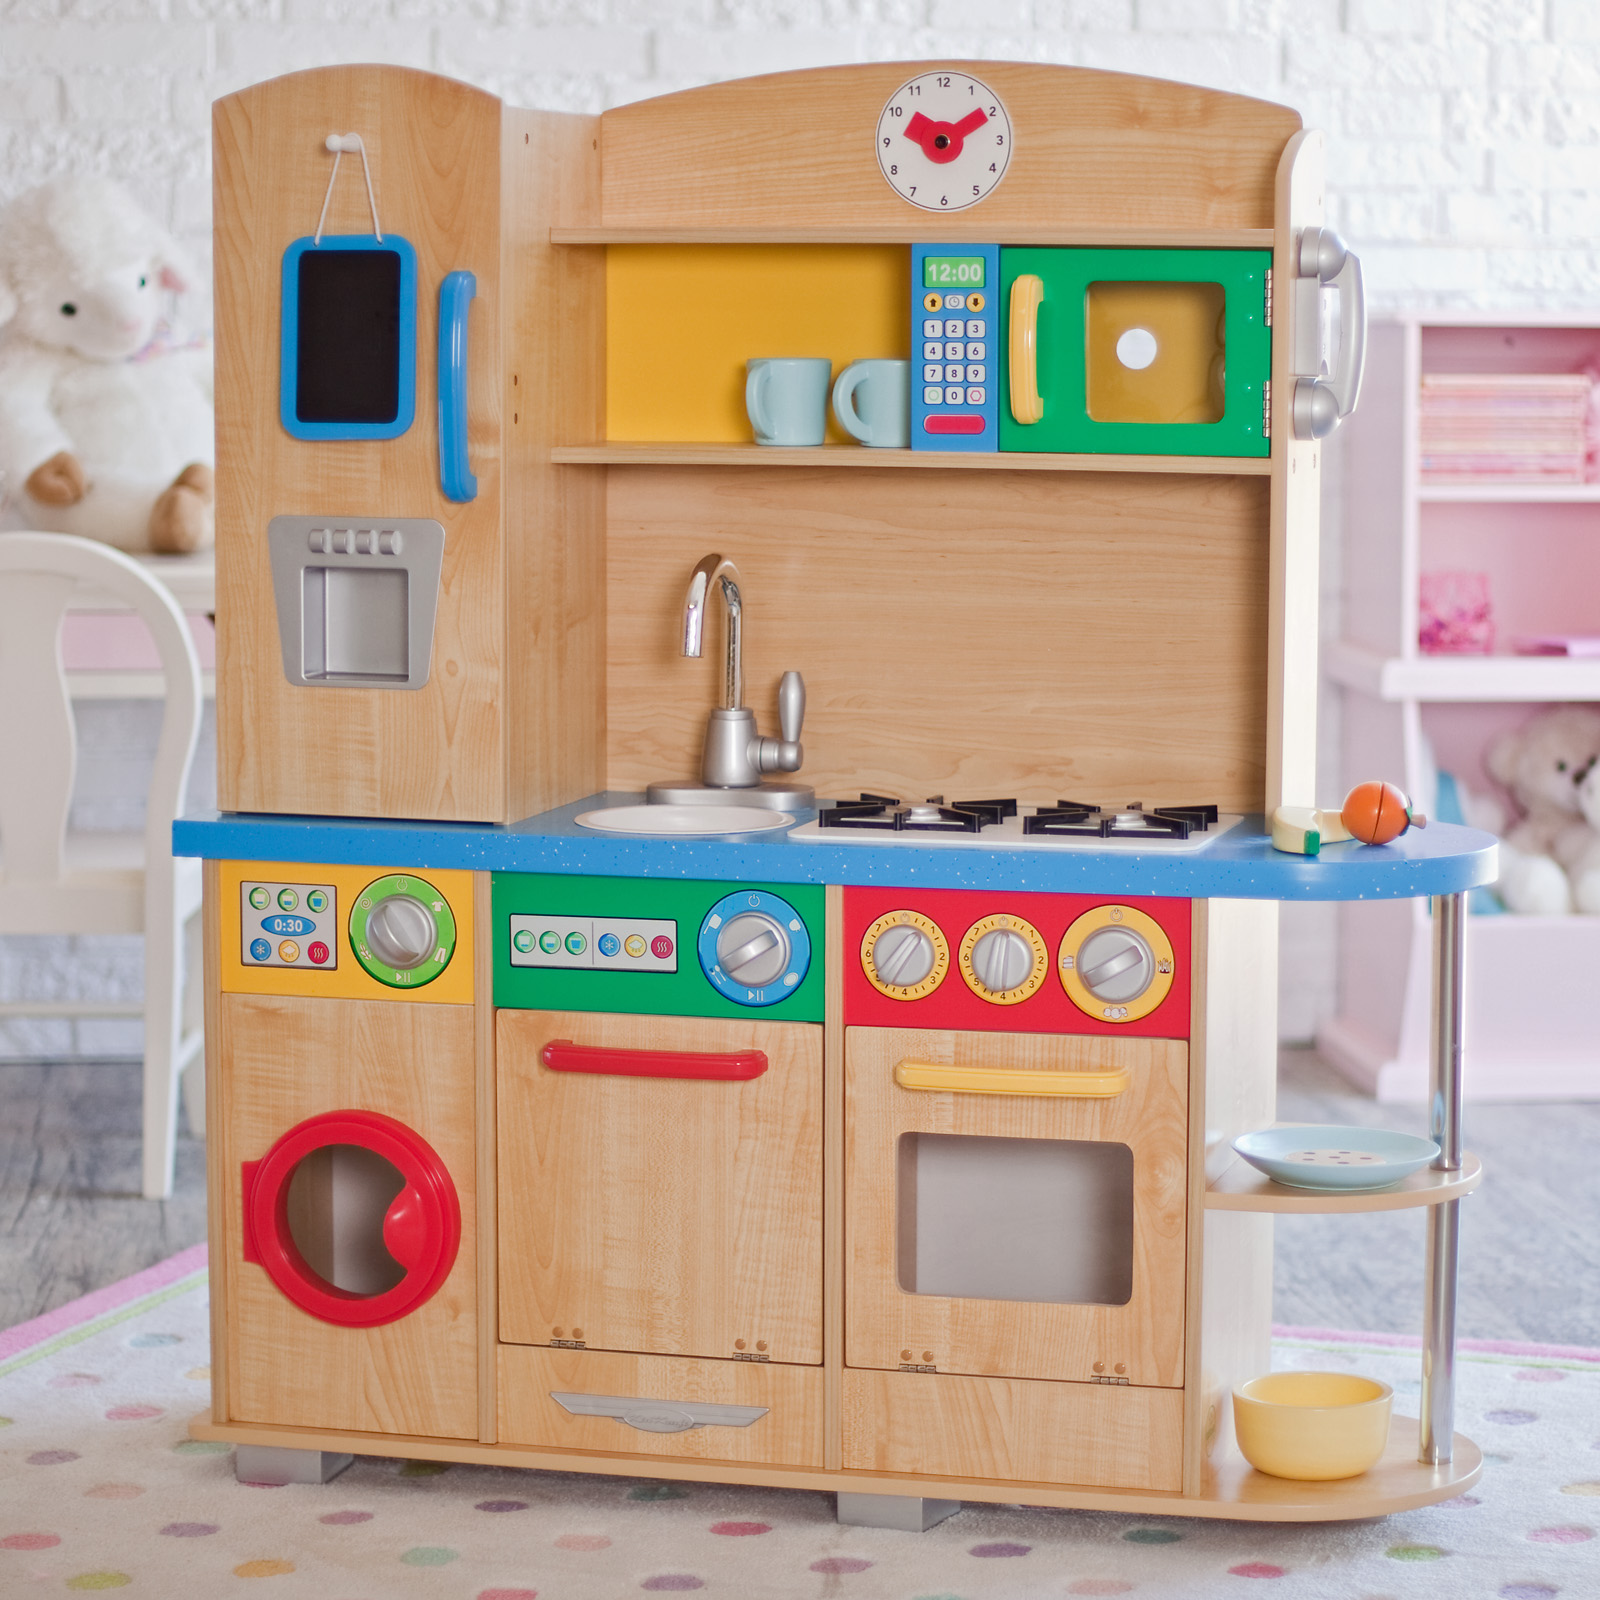 KidKraft Cook Together Play Kitchen  53186  Play Kitchens at Hayneedle